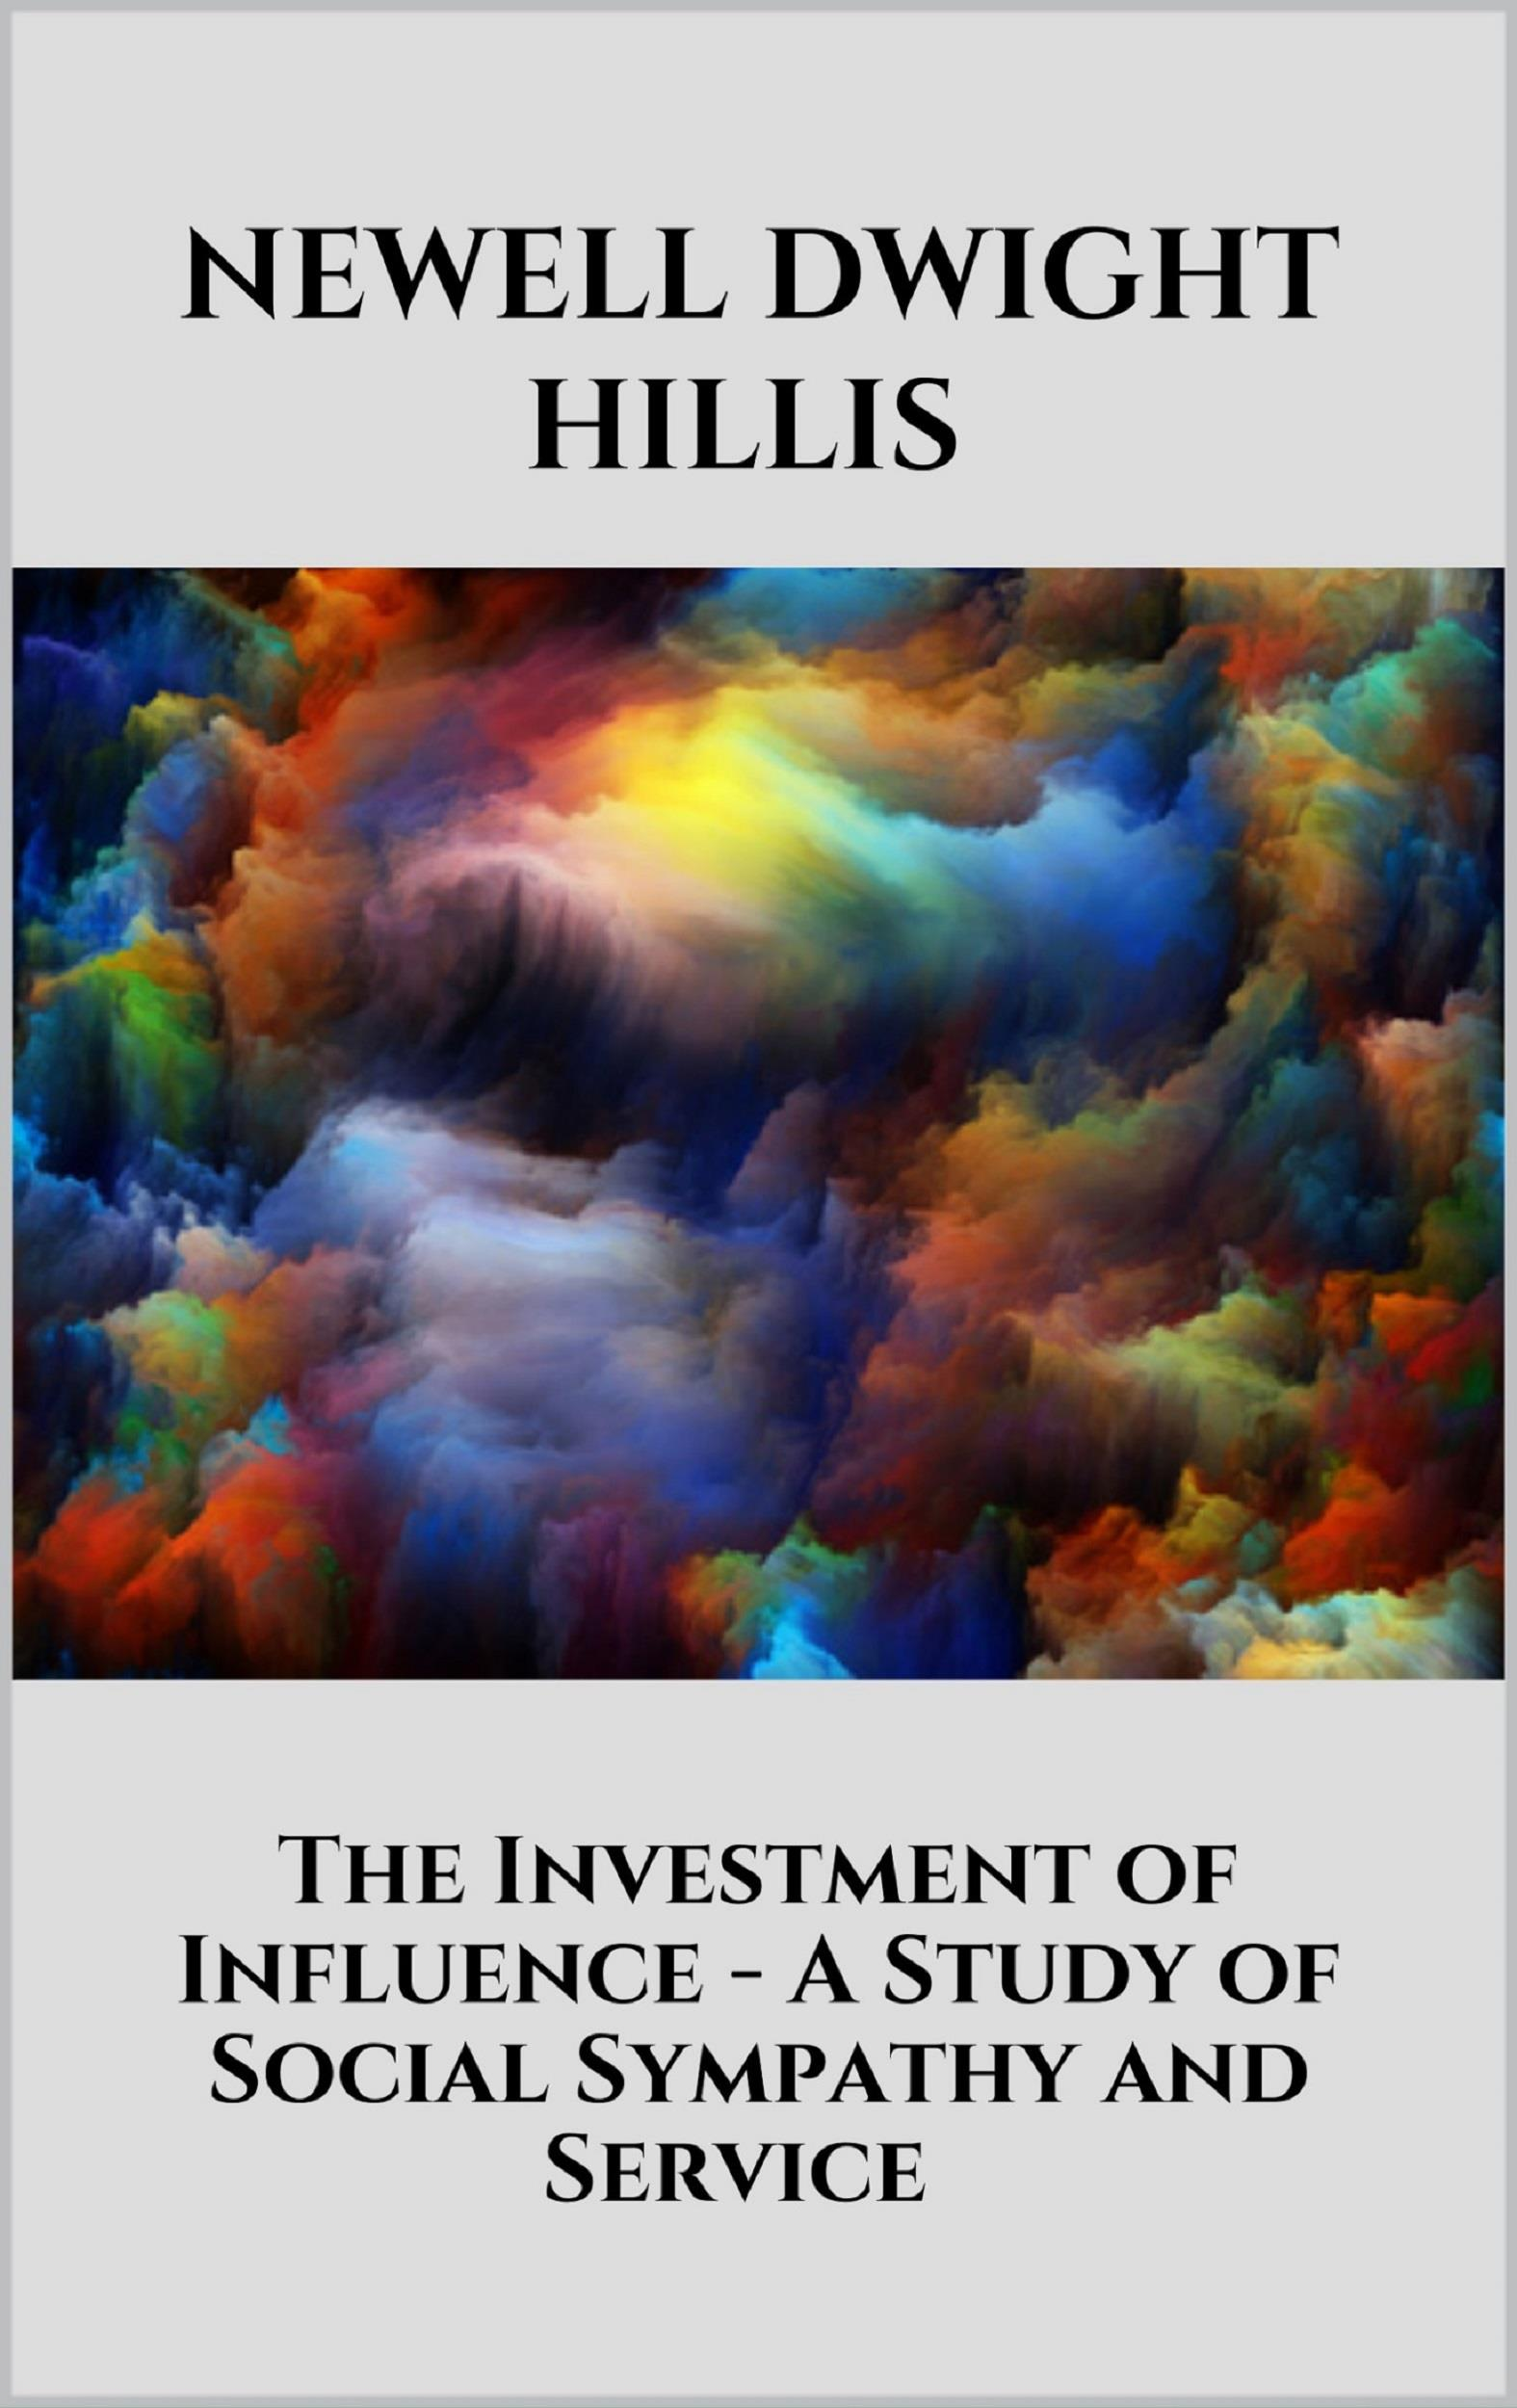 The Investment of Influence - A Study of Social Sympathy and Service